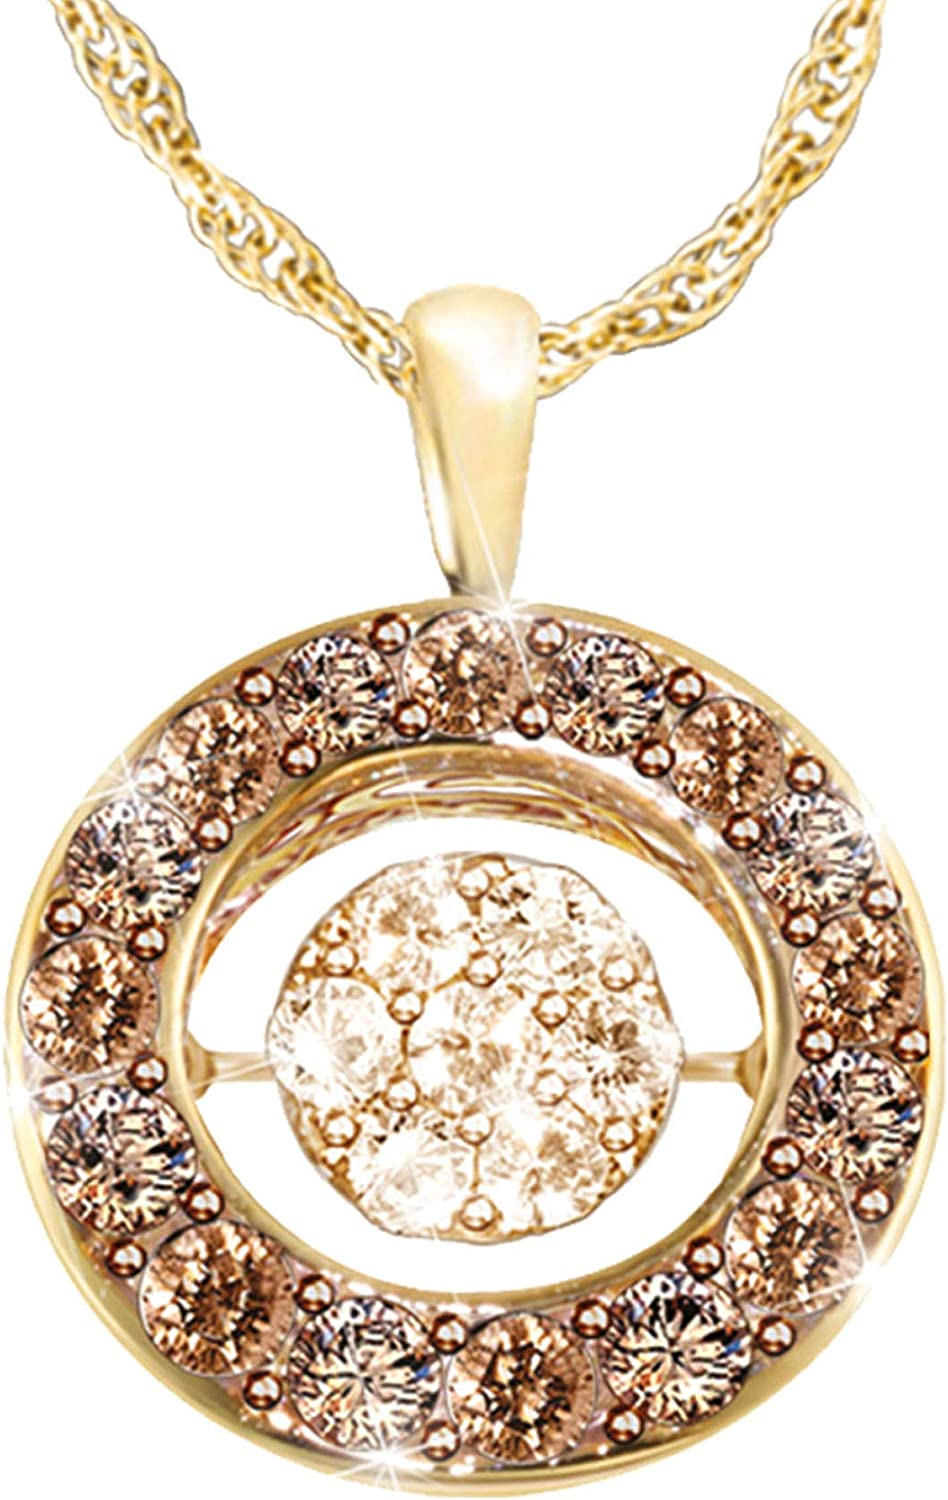 The Bradford Exchange Indulgence Diamond Mocha Pendant 18-Carat Gold-Plated Sterling Silver Pendant with A Pav/é of 7 Champagne Diamonds in Brilliant Motions/™ Setting